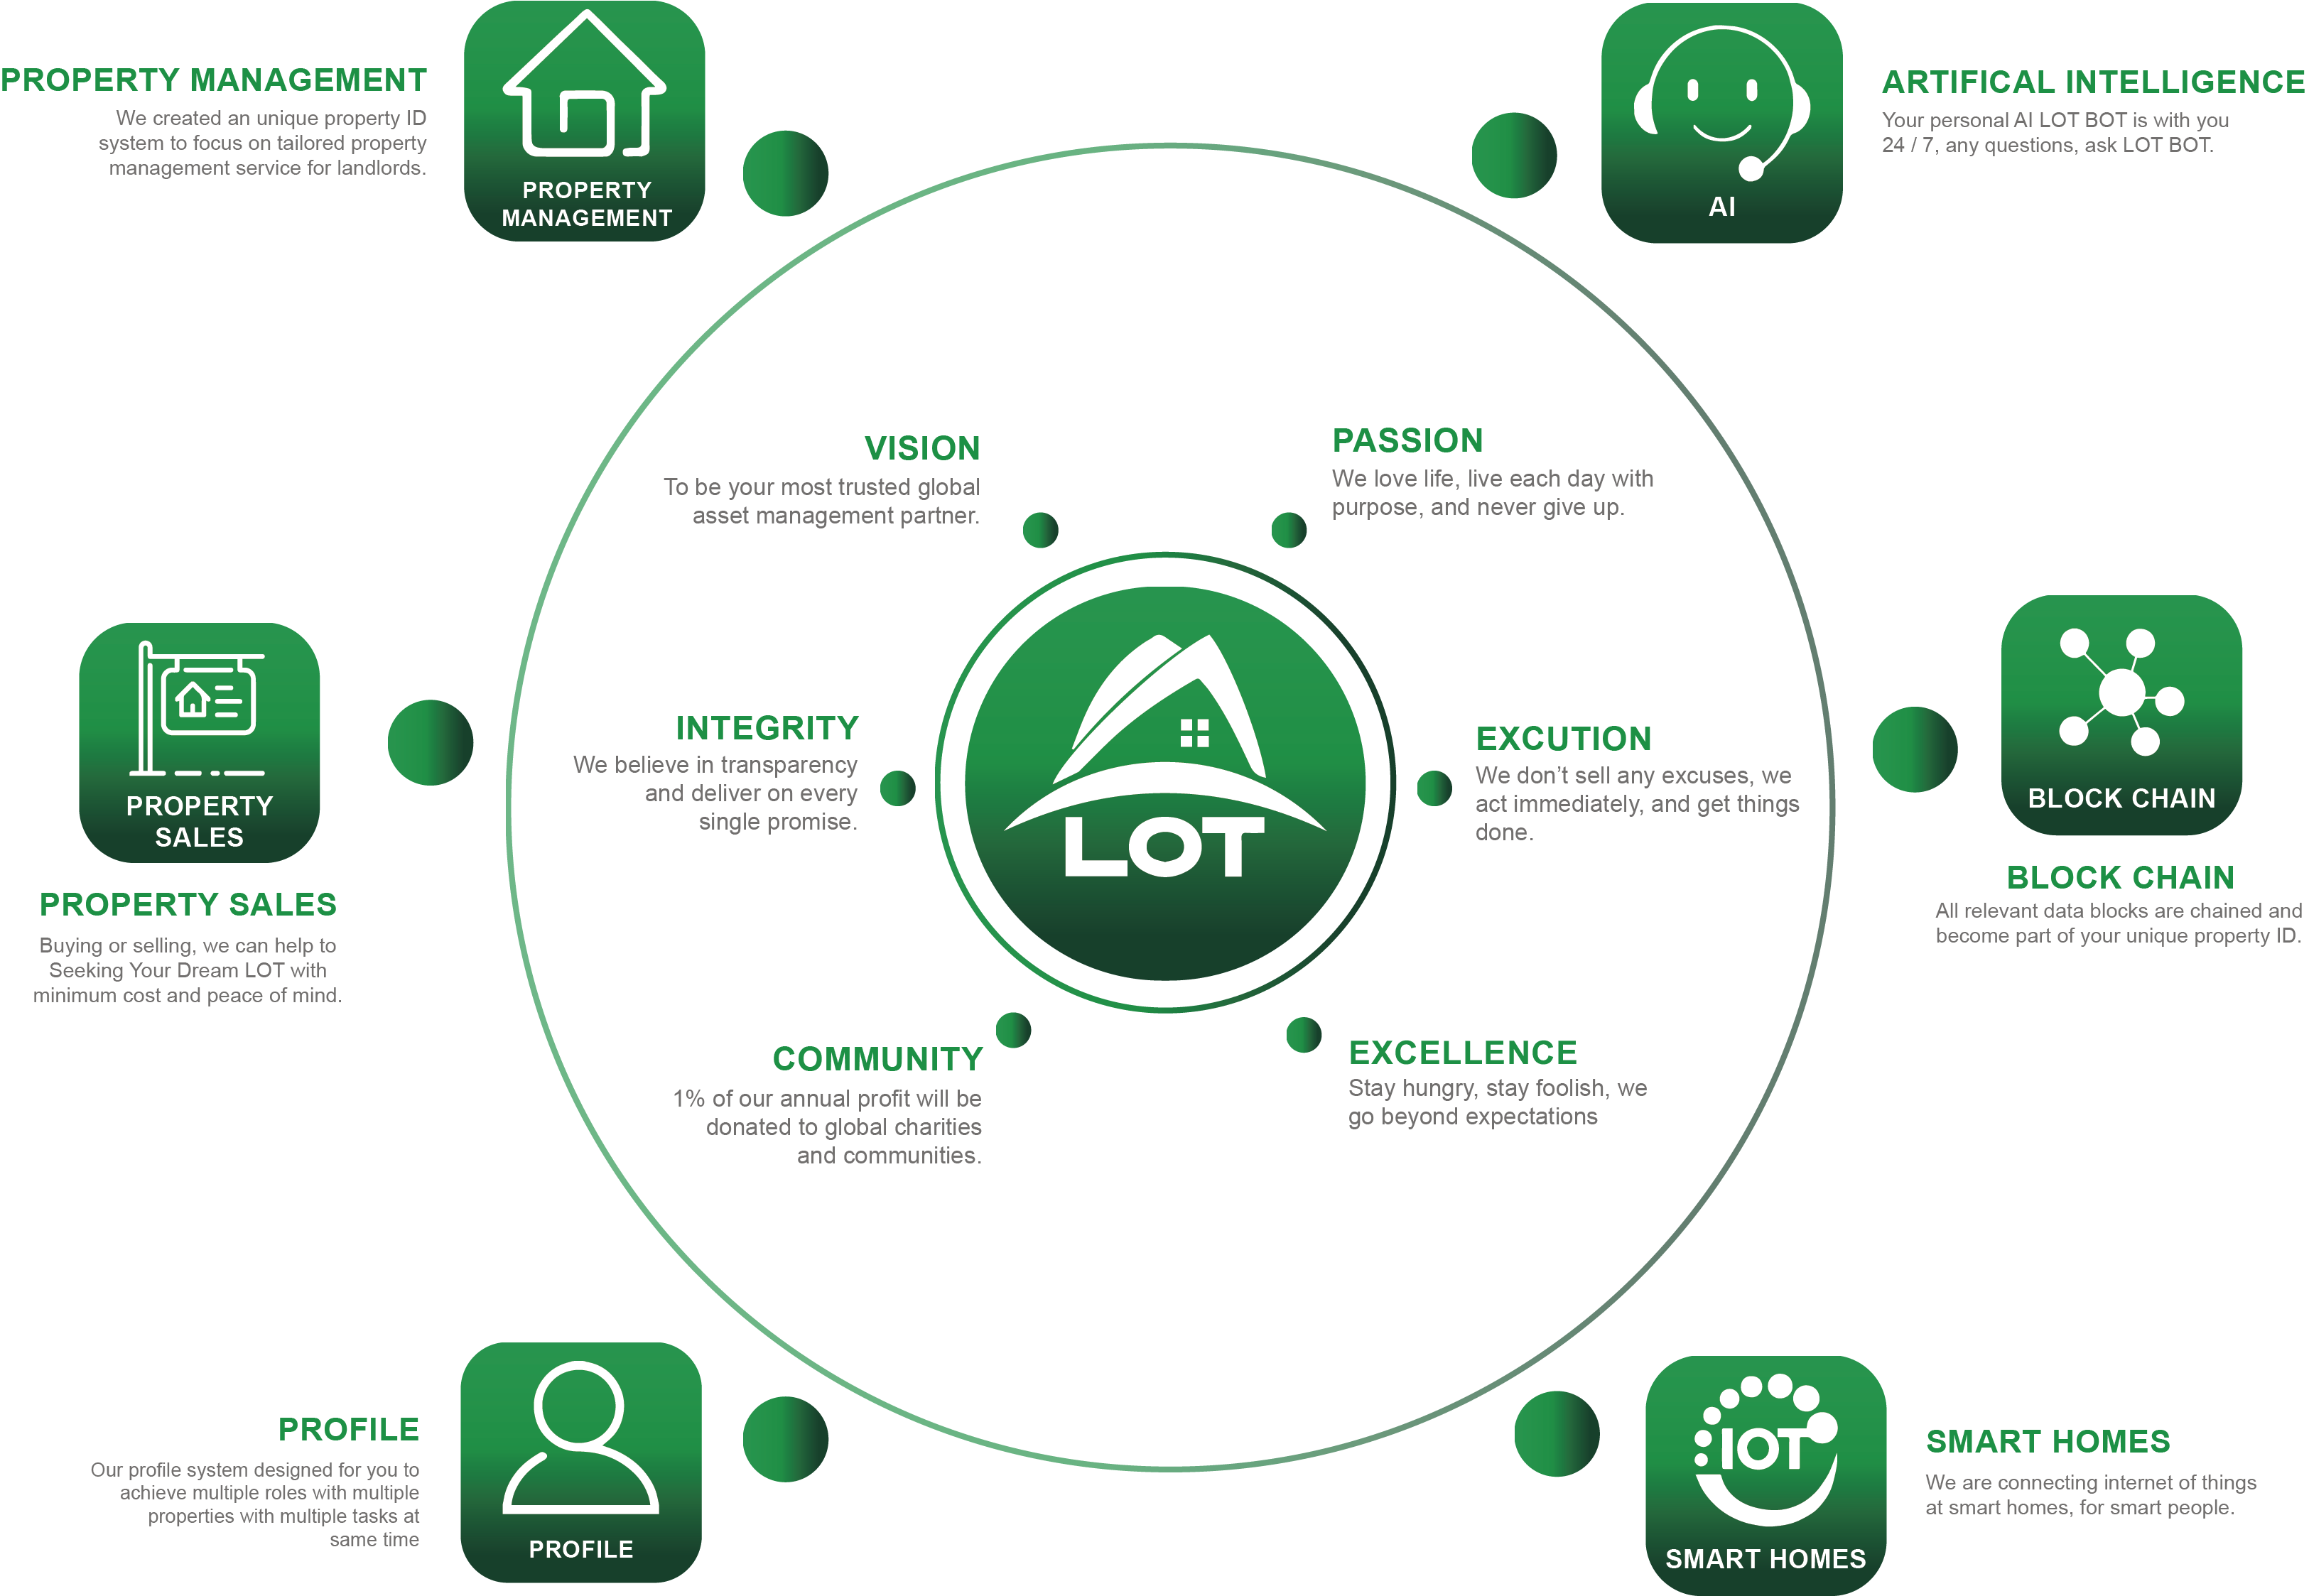 Learn more about Dream LOT